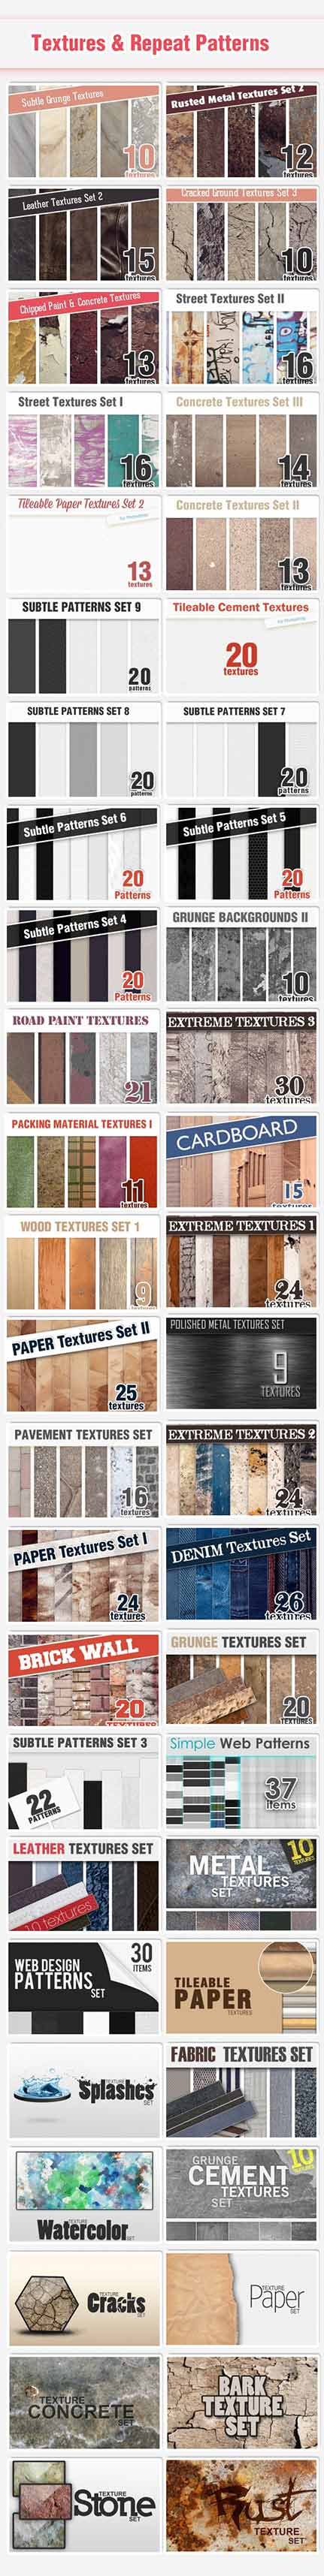 textures new Graphic Library from DesignTNT